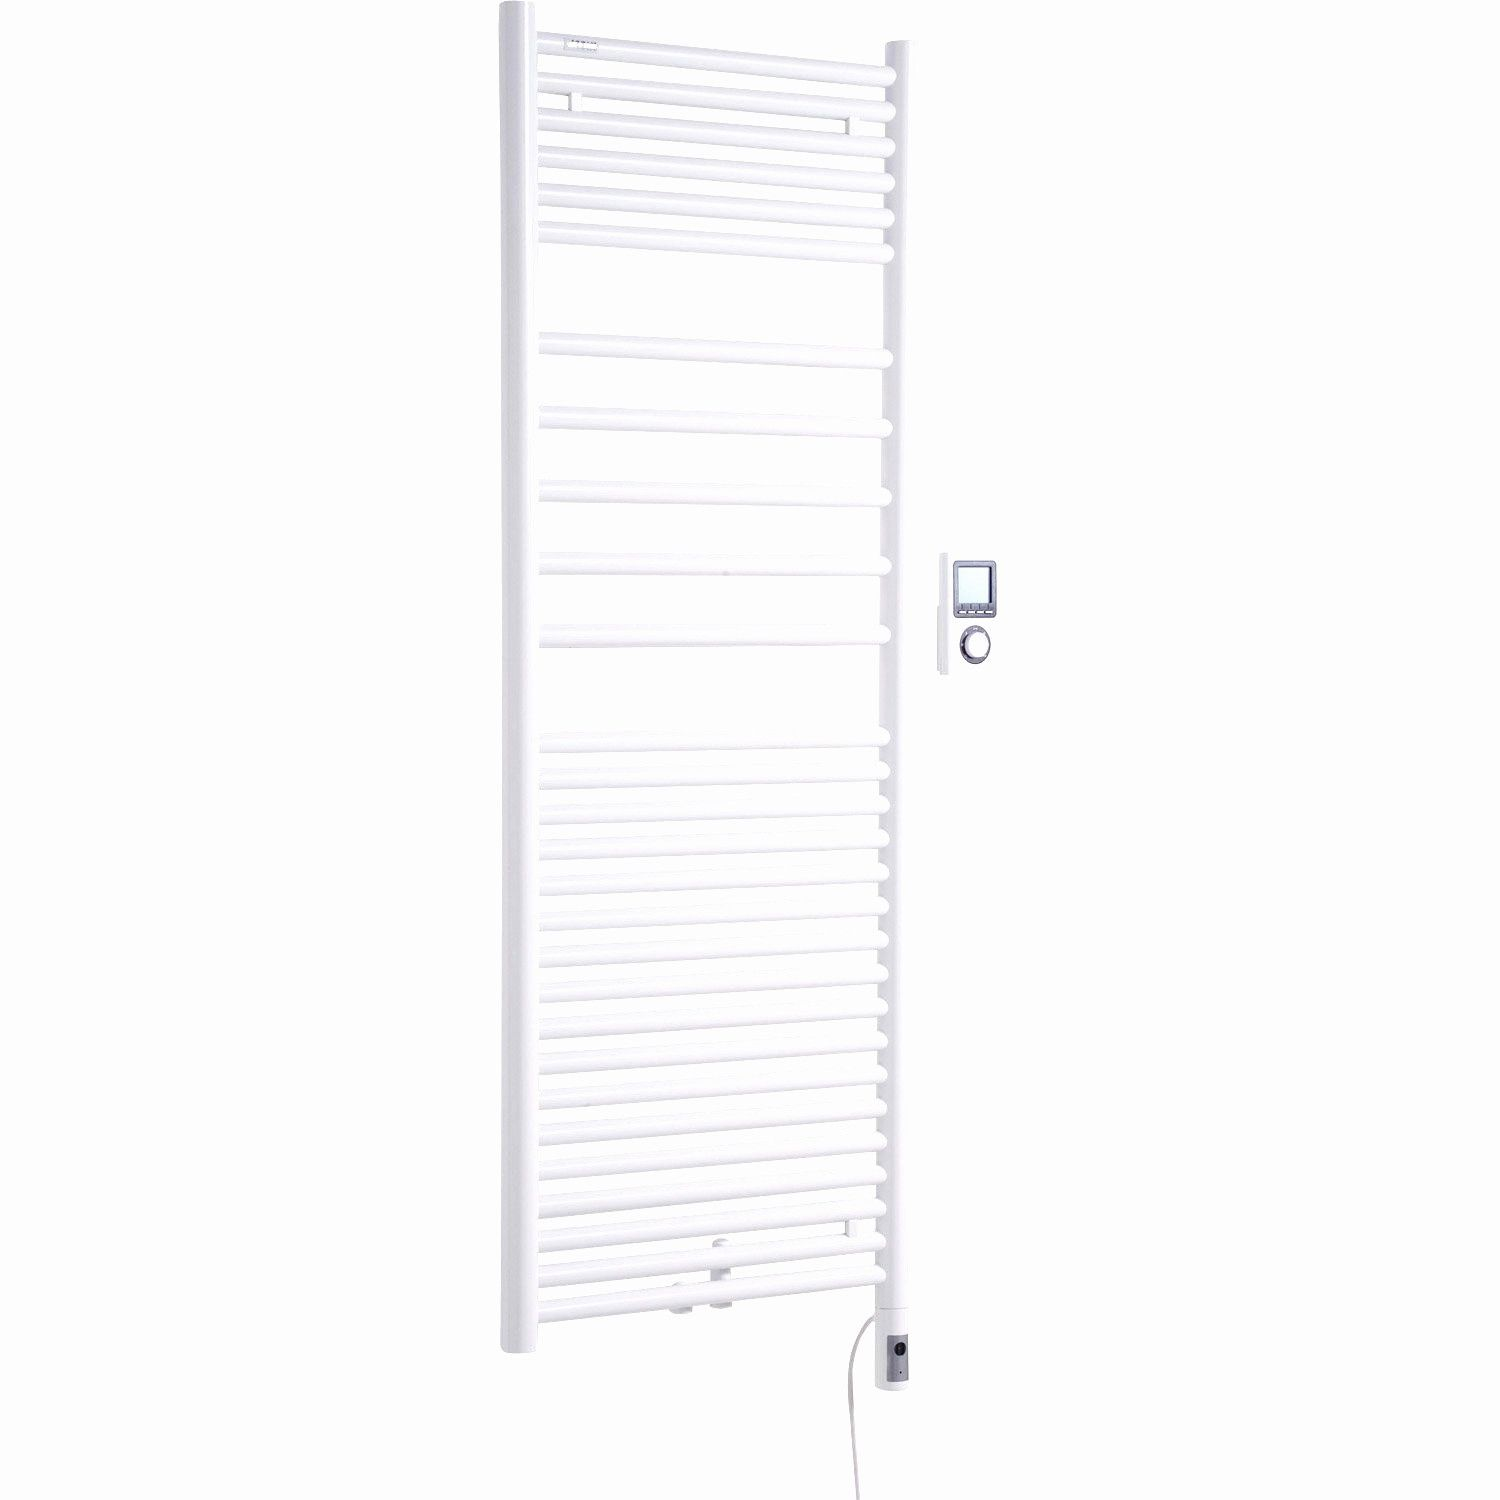 Elegant Radiateur Castorama Inertie  Bathroom heater, Tall